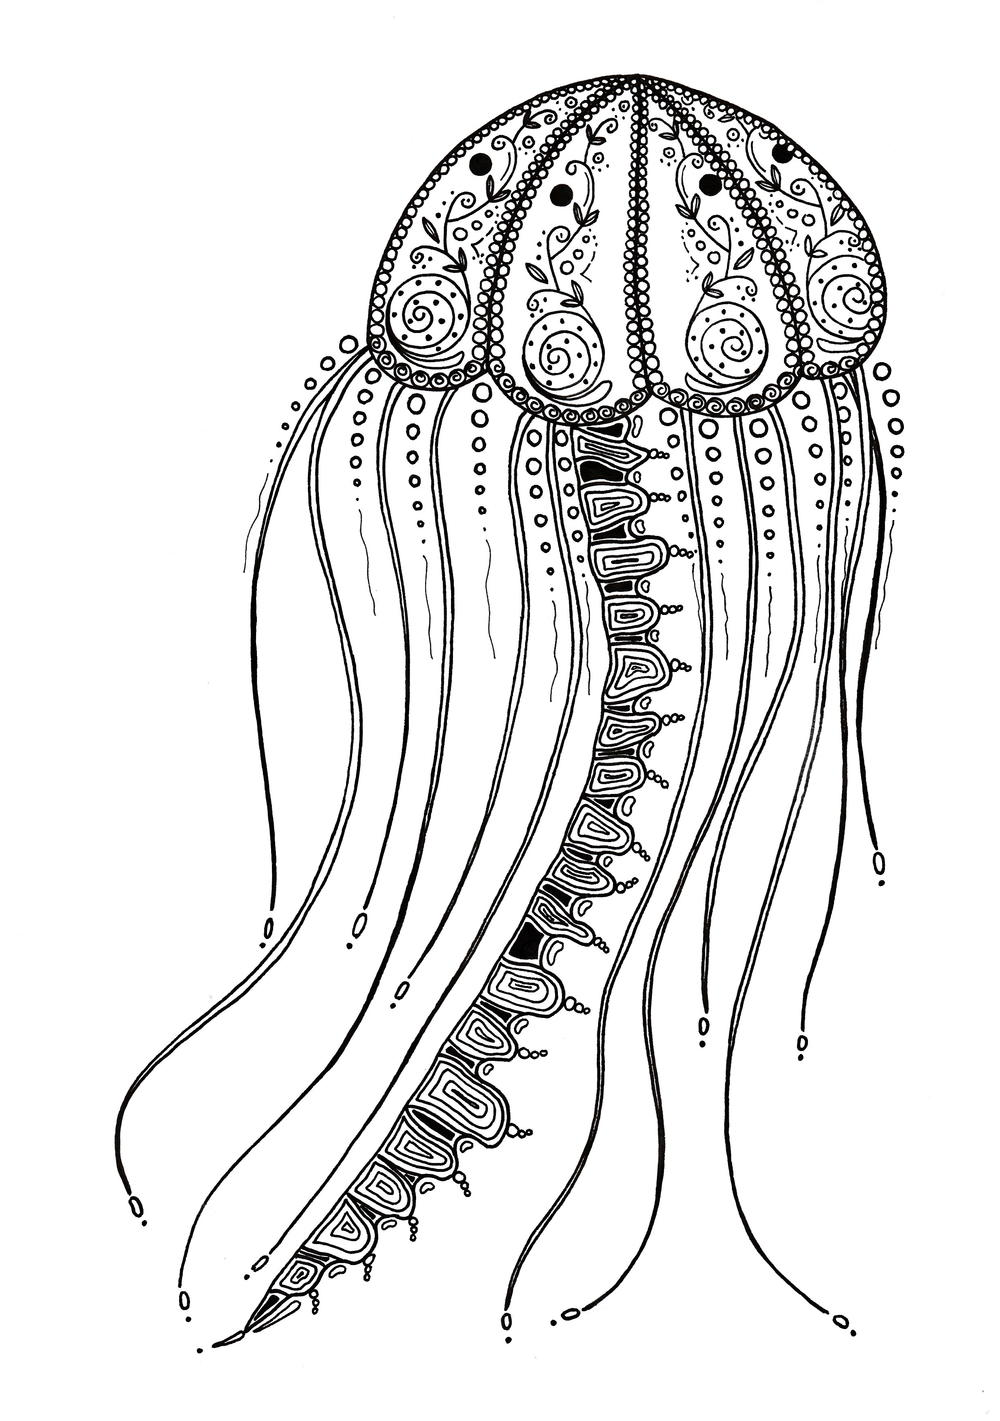 Jelly Fish Coloring Page : jelly, coloring, Delicate, Jellyfish, Adult, Coloring, FaveCrafts.com